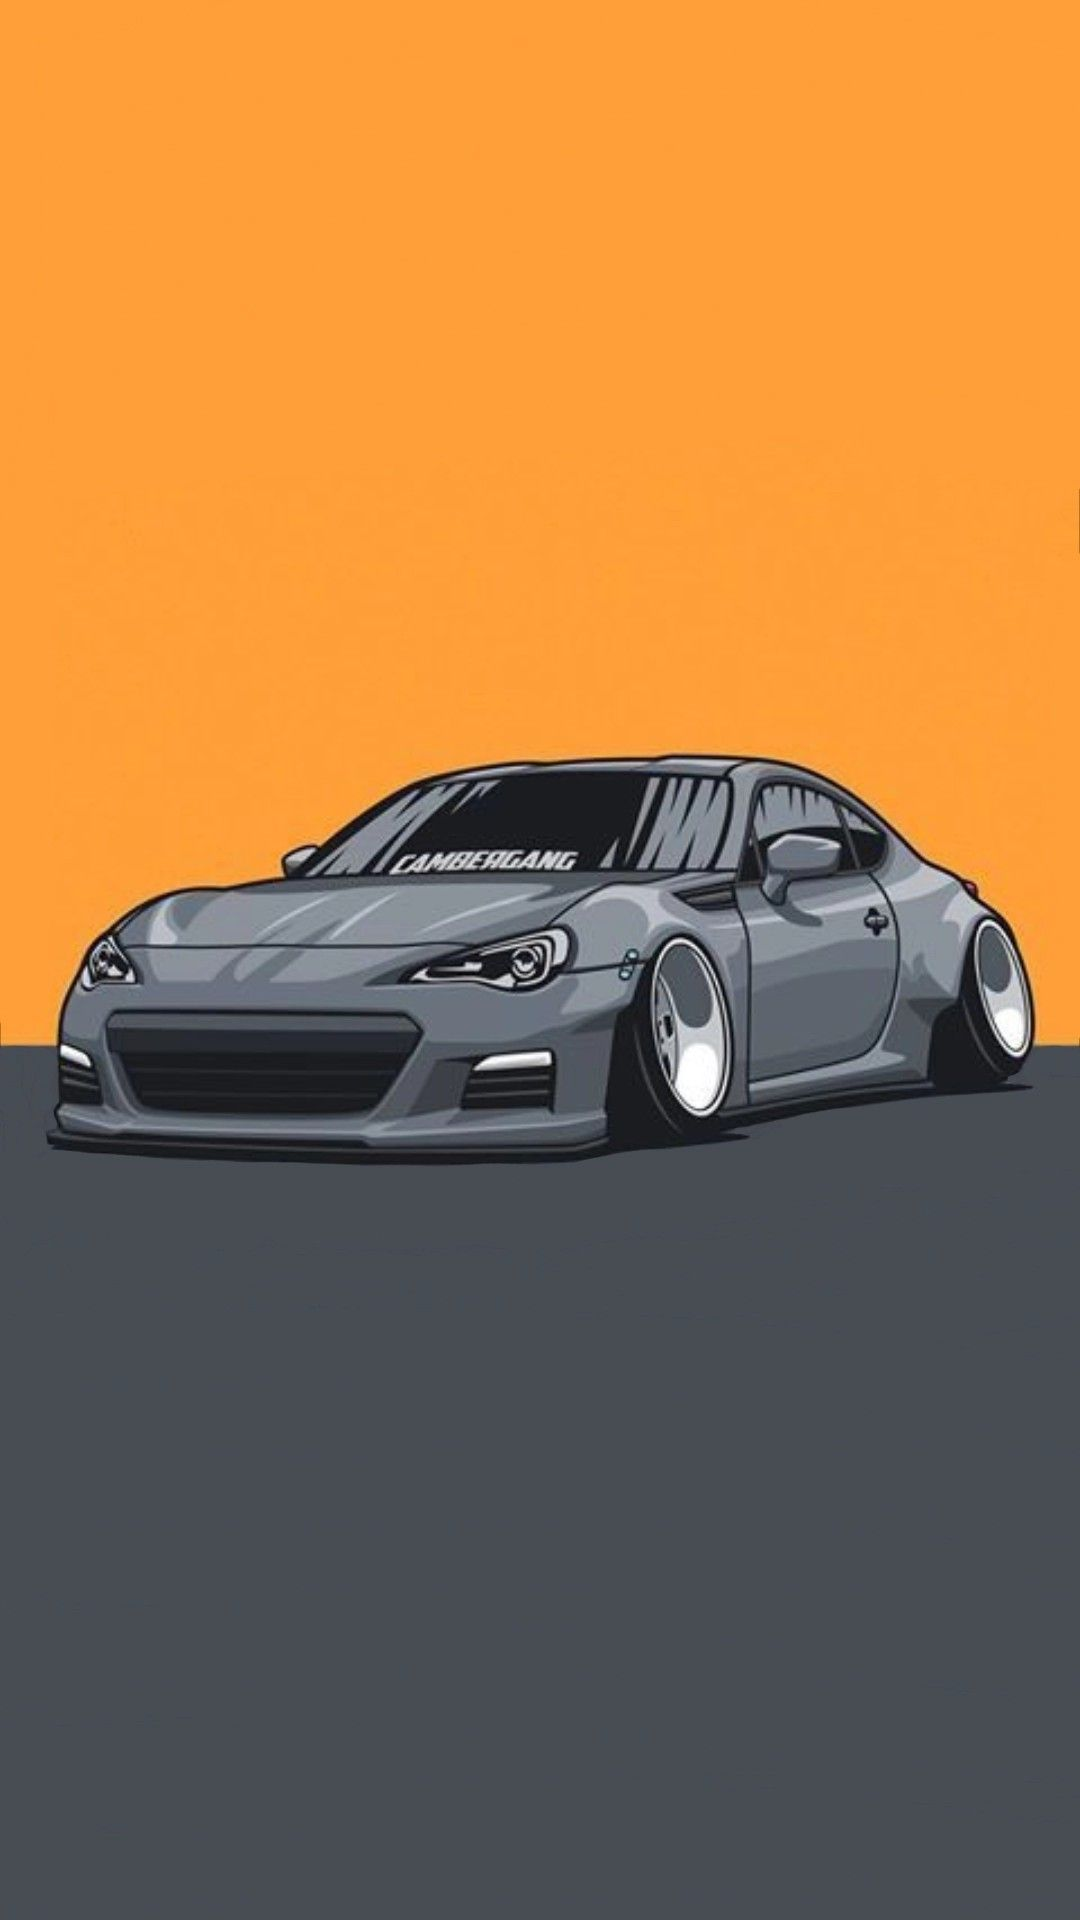 Print to fit any size wall. Car Drawing Wallpapers Top Free Car Drawing Backgrounds Wallpaperaccess